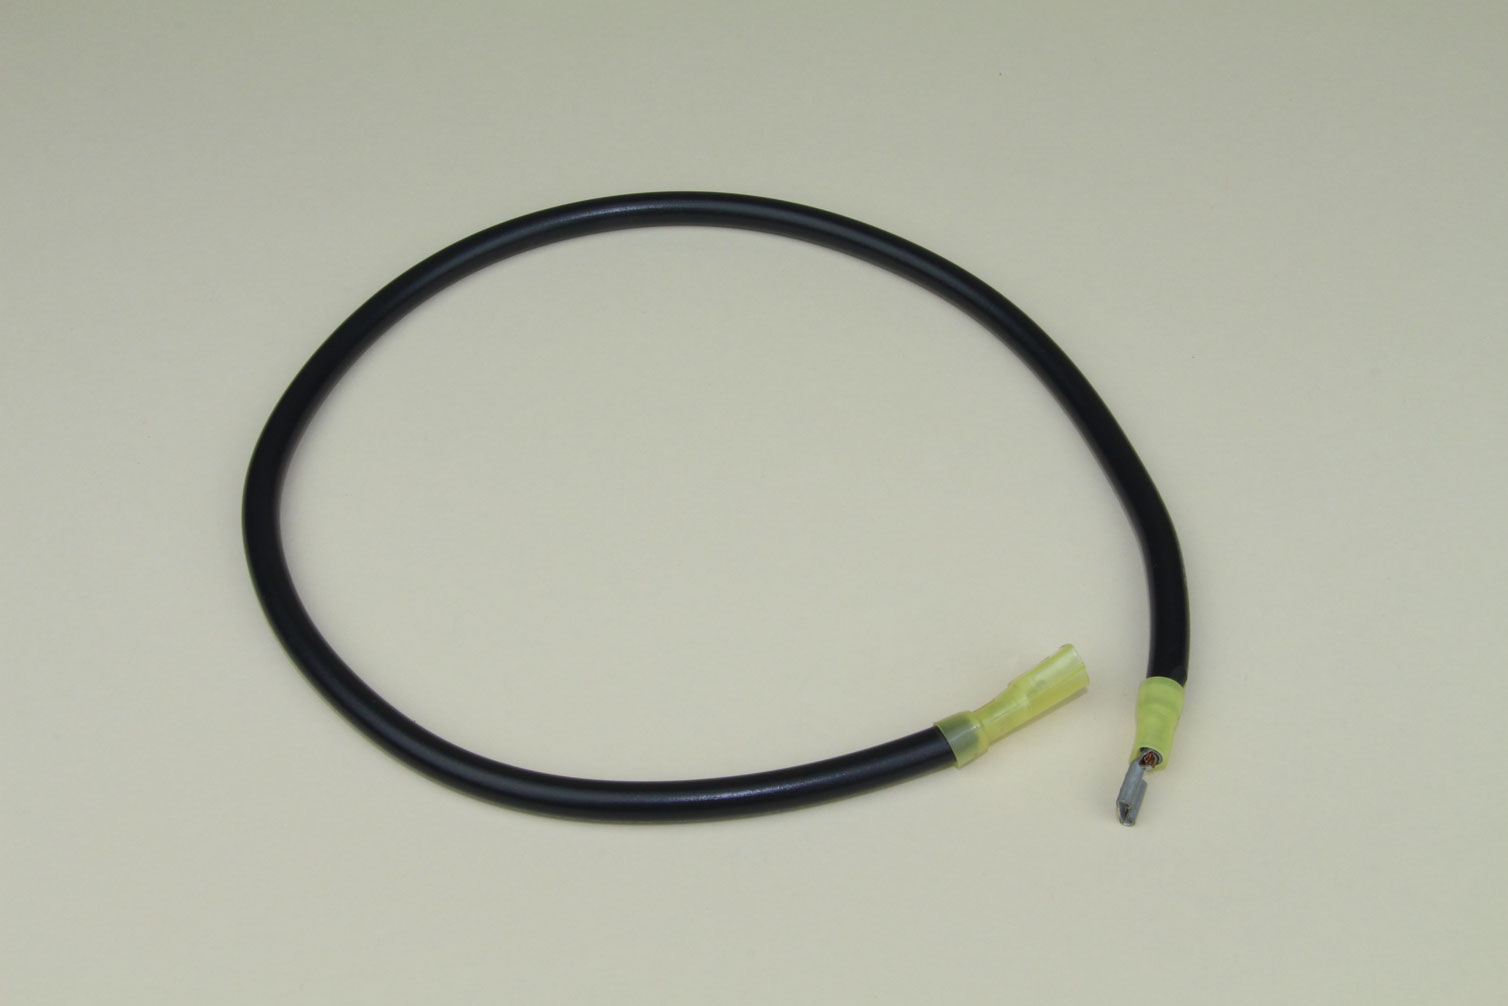 SK225 Flame Sensor Cable with Connectors